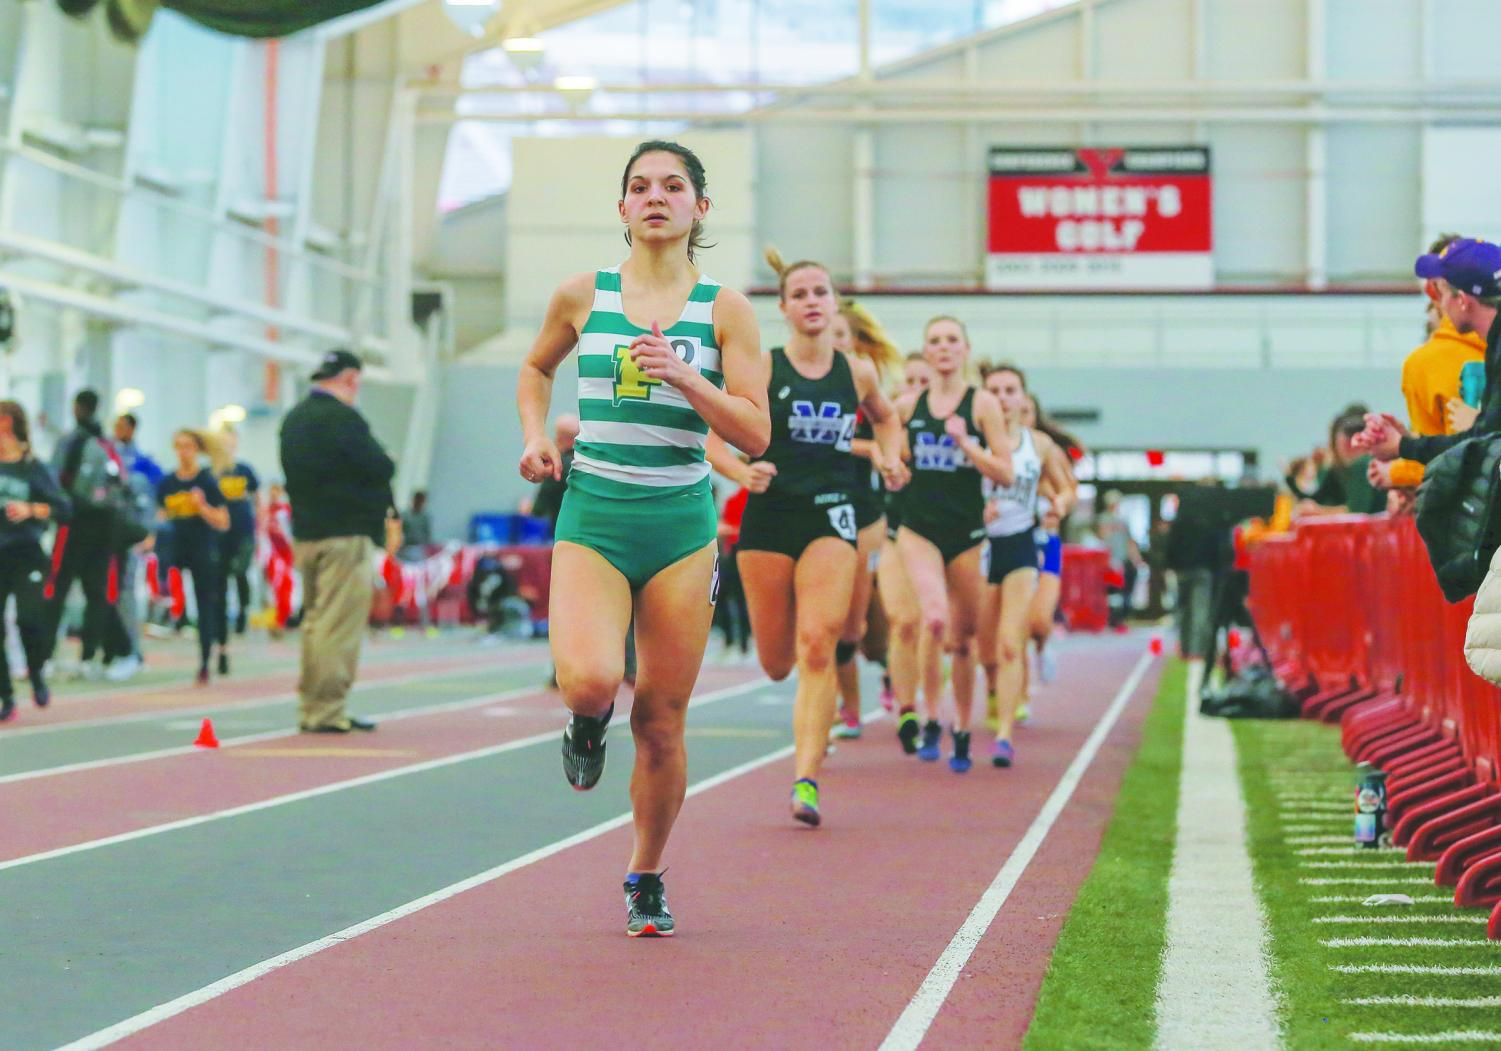 Sophomore Alyssa Boyd competes at the Youngstown Invitational last month. Last weekend, Boyd qualified for nationals in the distance medley relay alongside freshmen Alyssa Campbell and Nia Boyd and Senior Anna Shields.